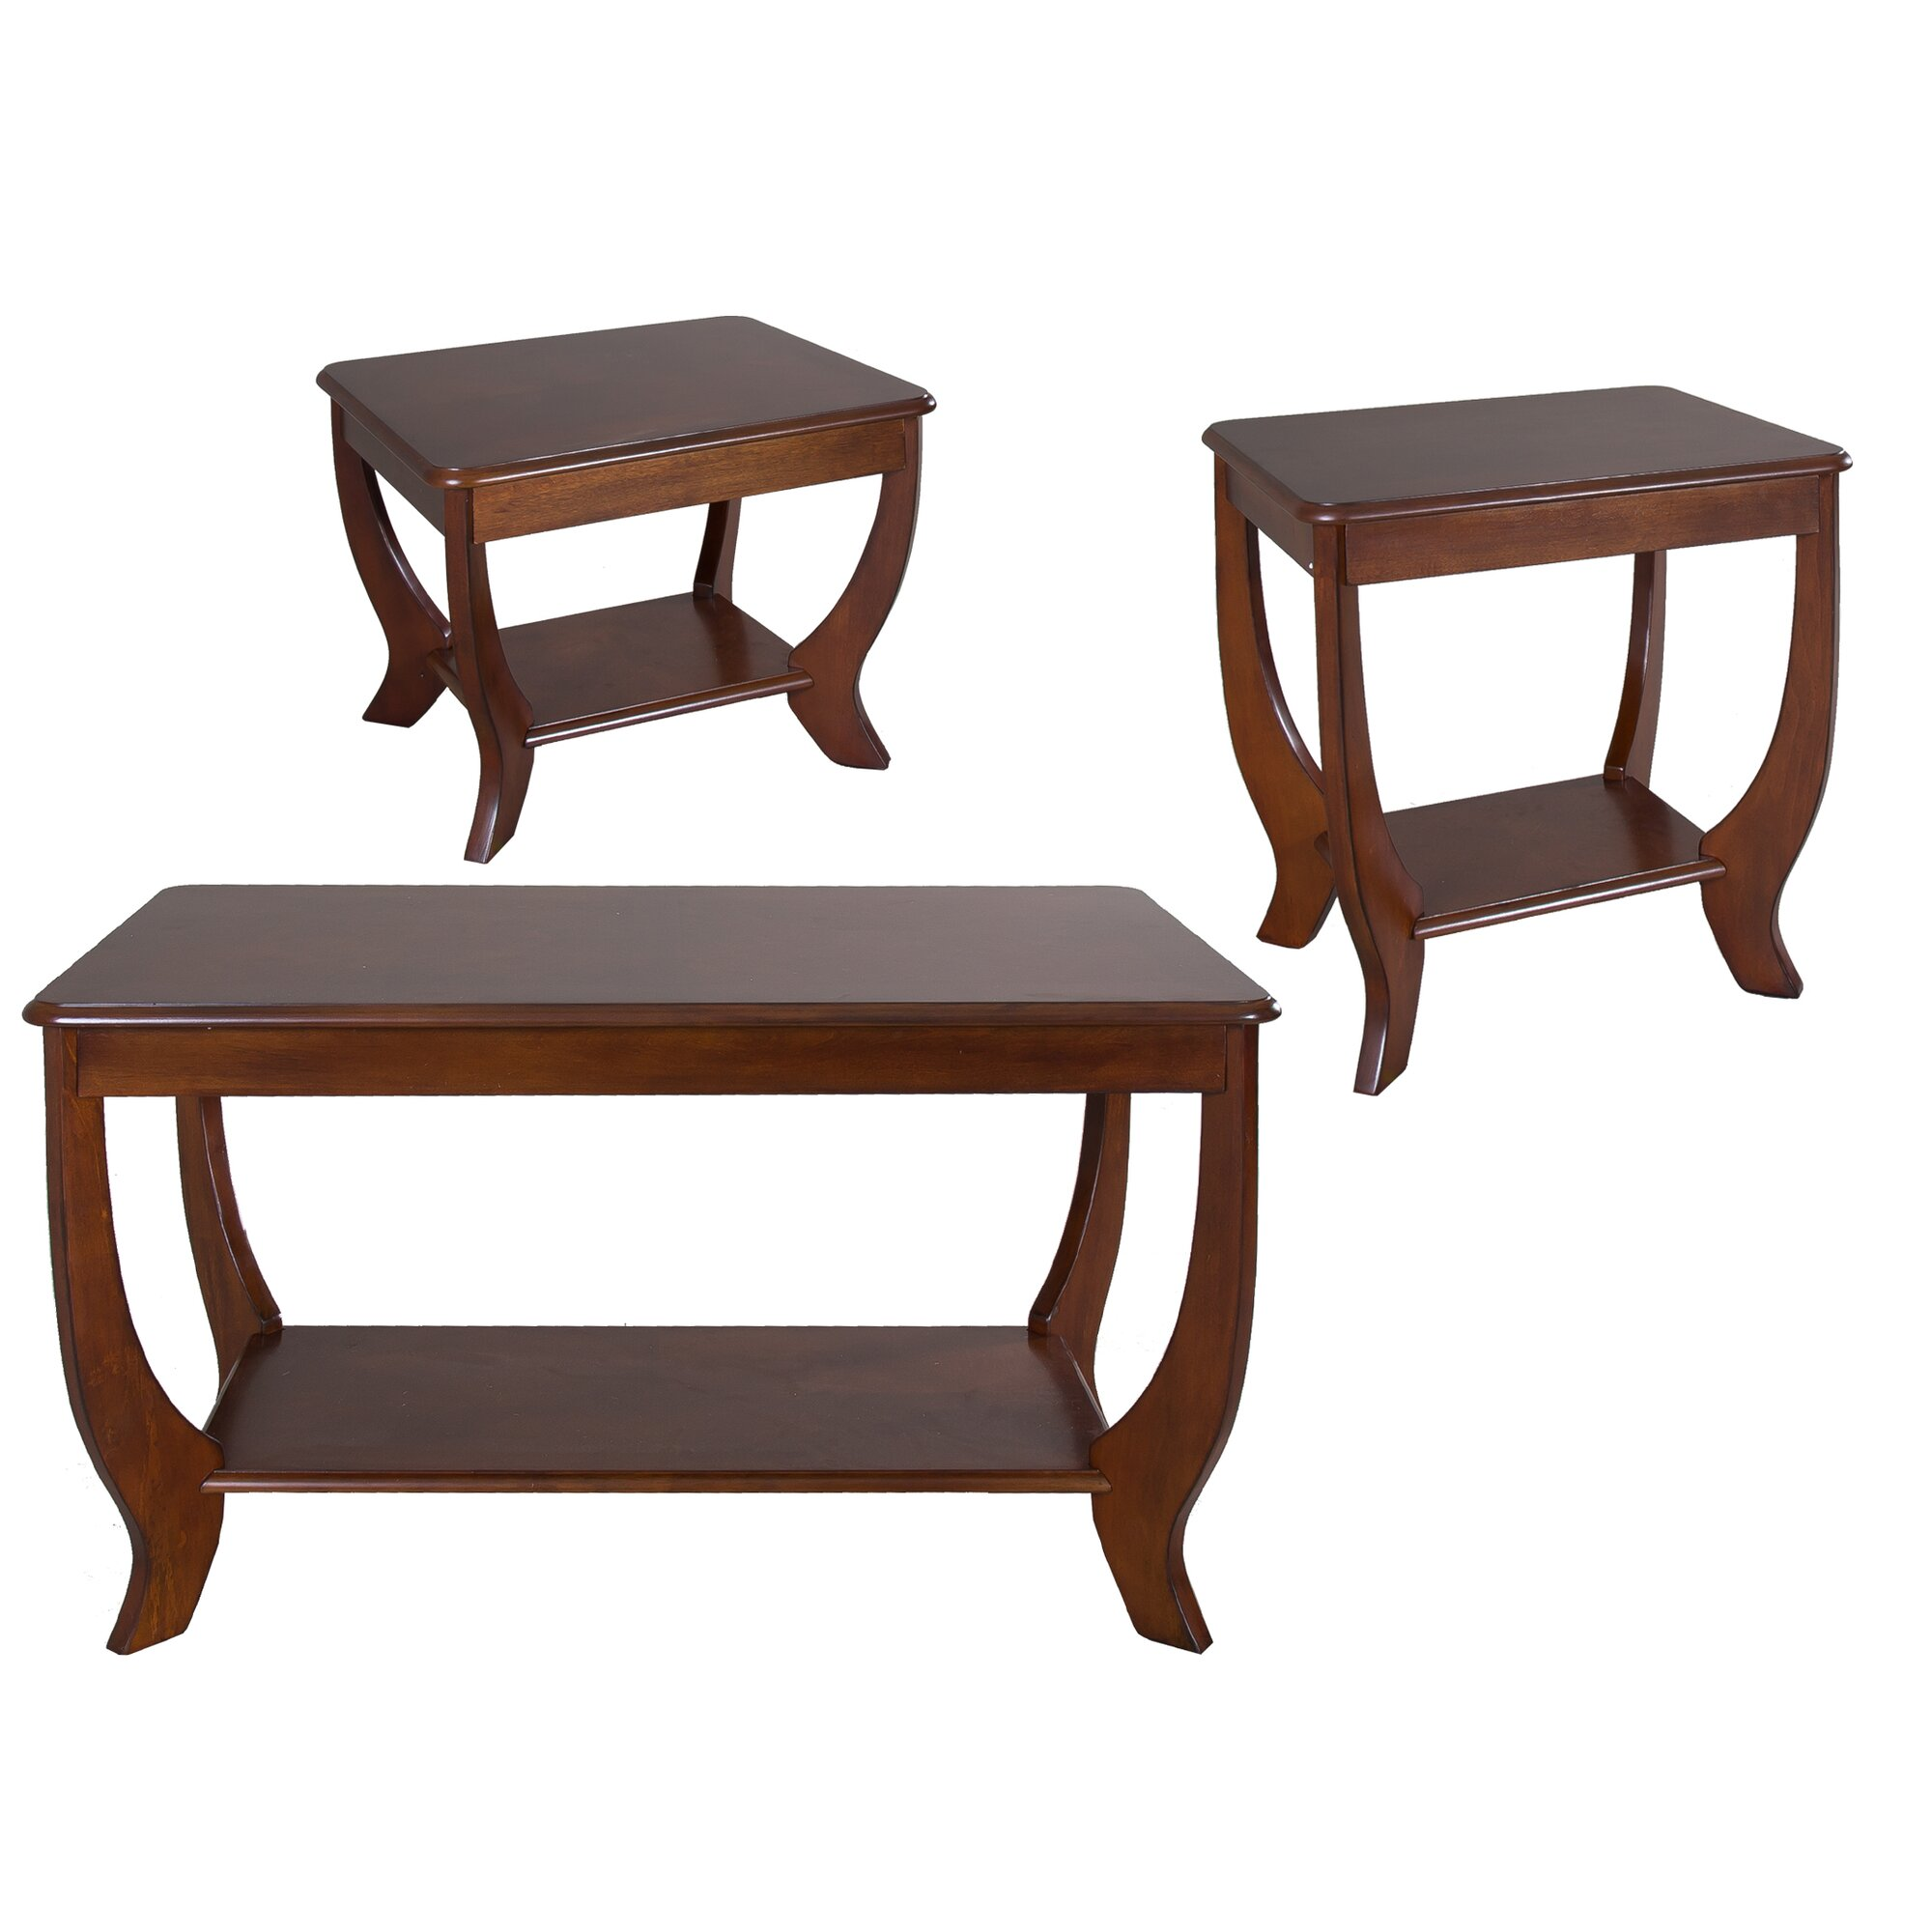 Veropeso 3 Piece Coffee Table Set: Rosalind Wheeler Pettigrew 3 Piece Coffee Table Set